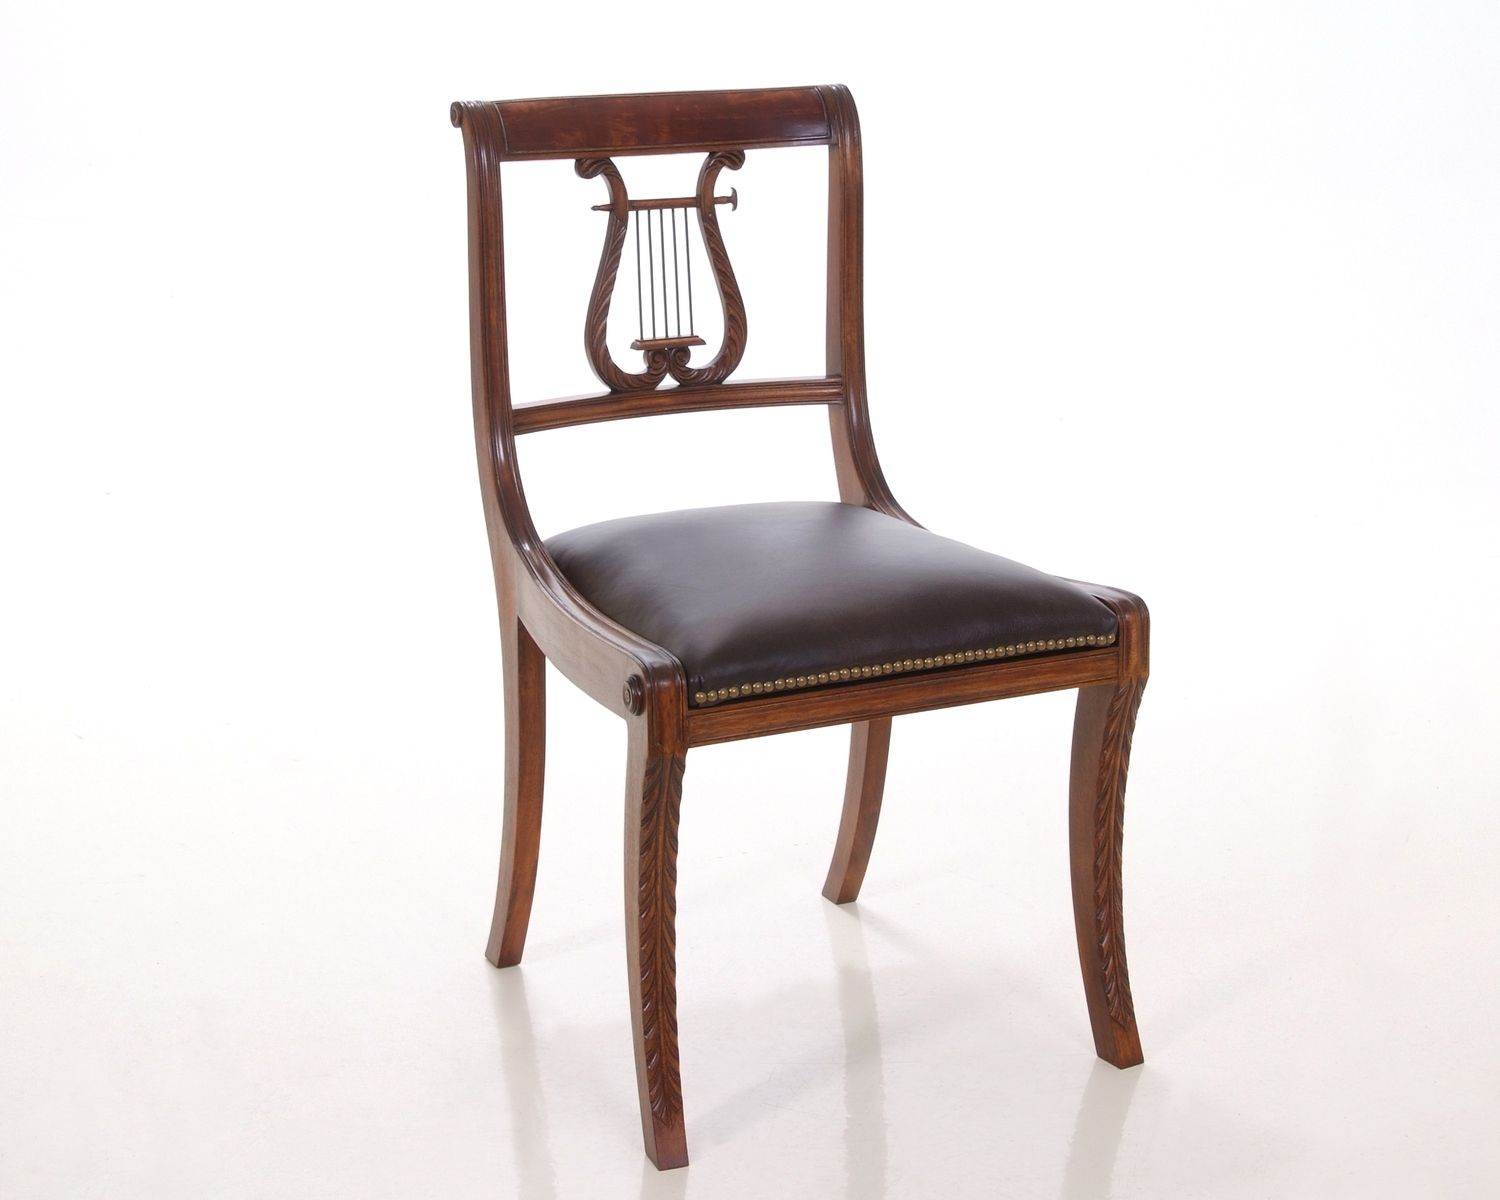 custom made throne chairs high chair for baby hand lyre back by kauffman fine furniture